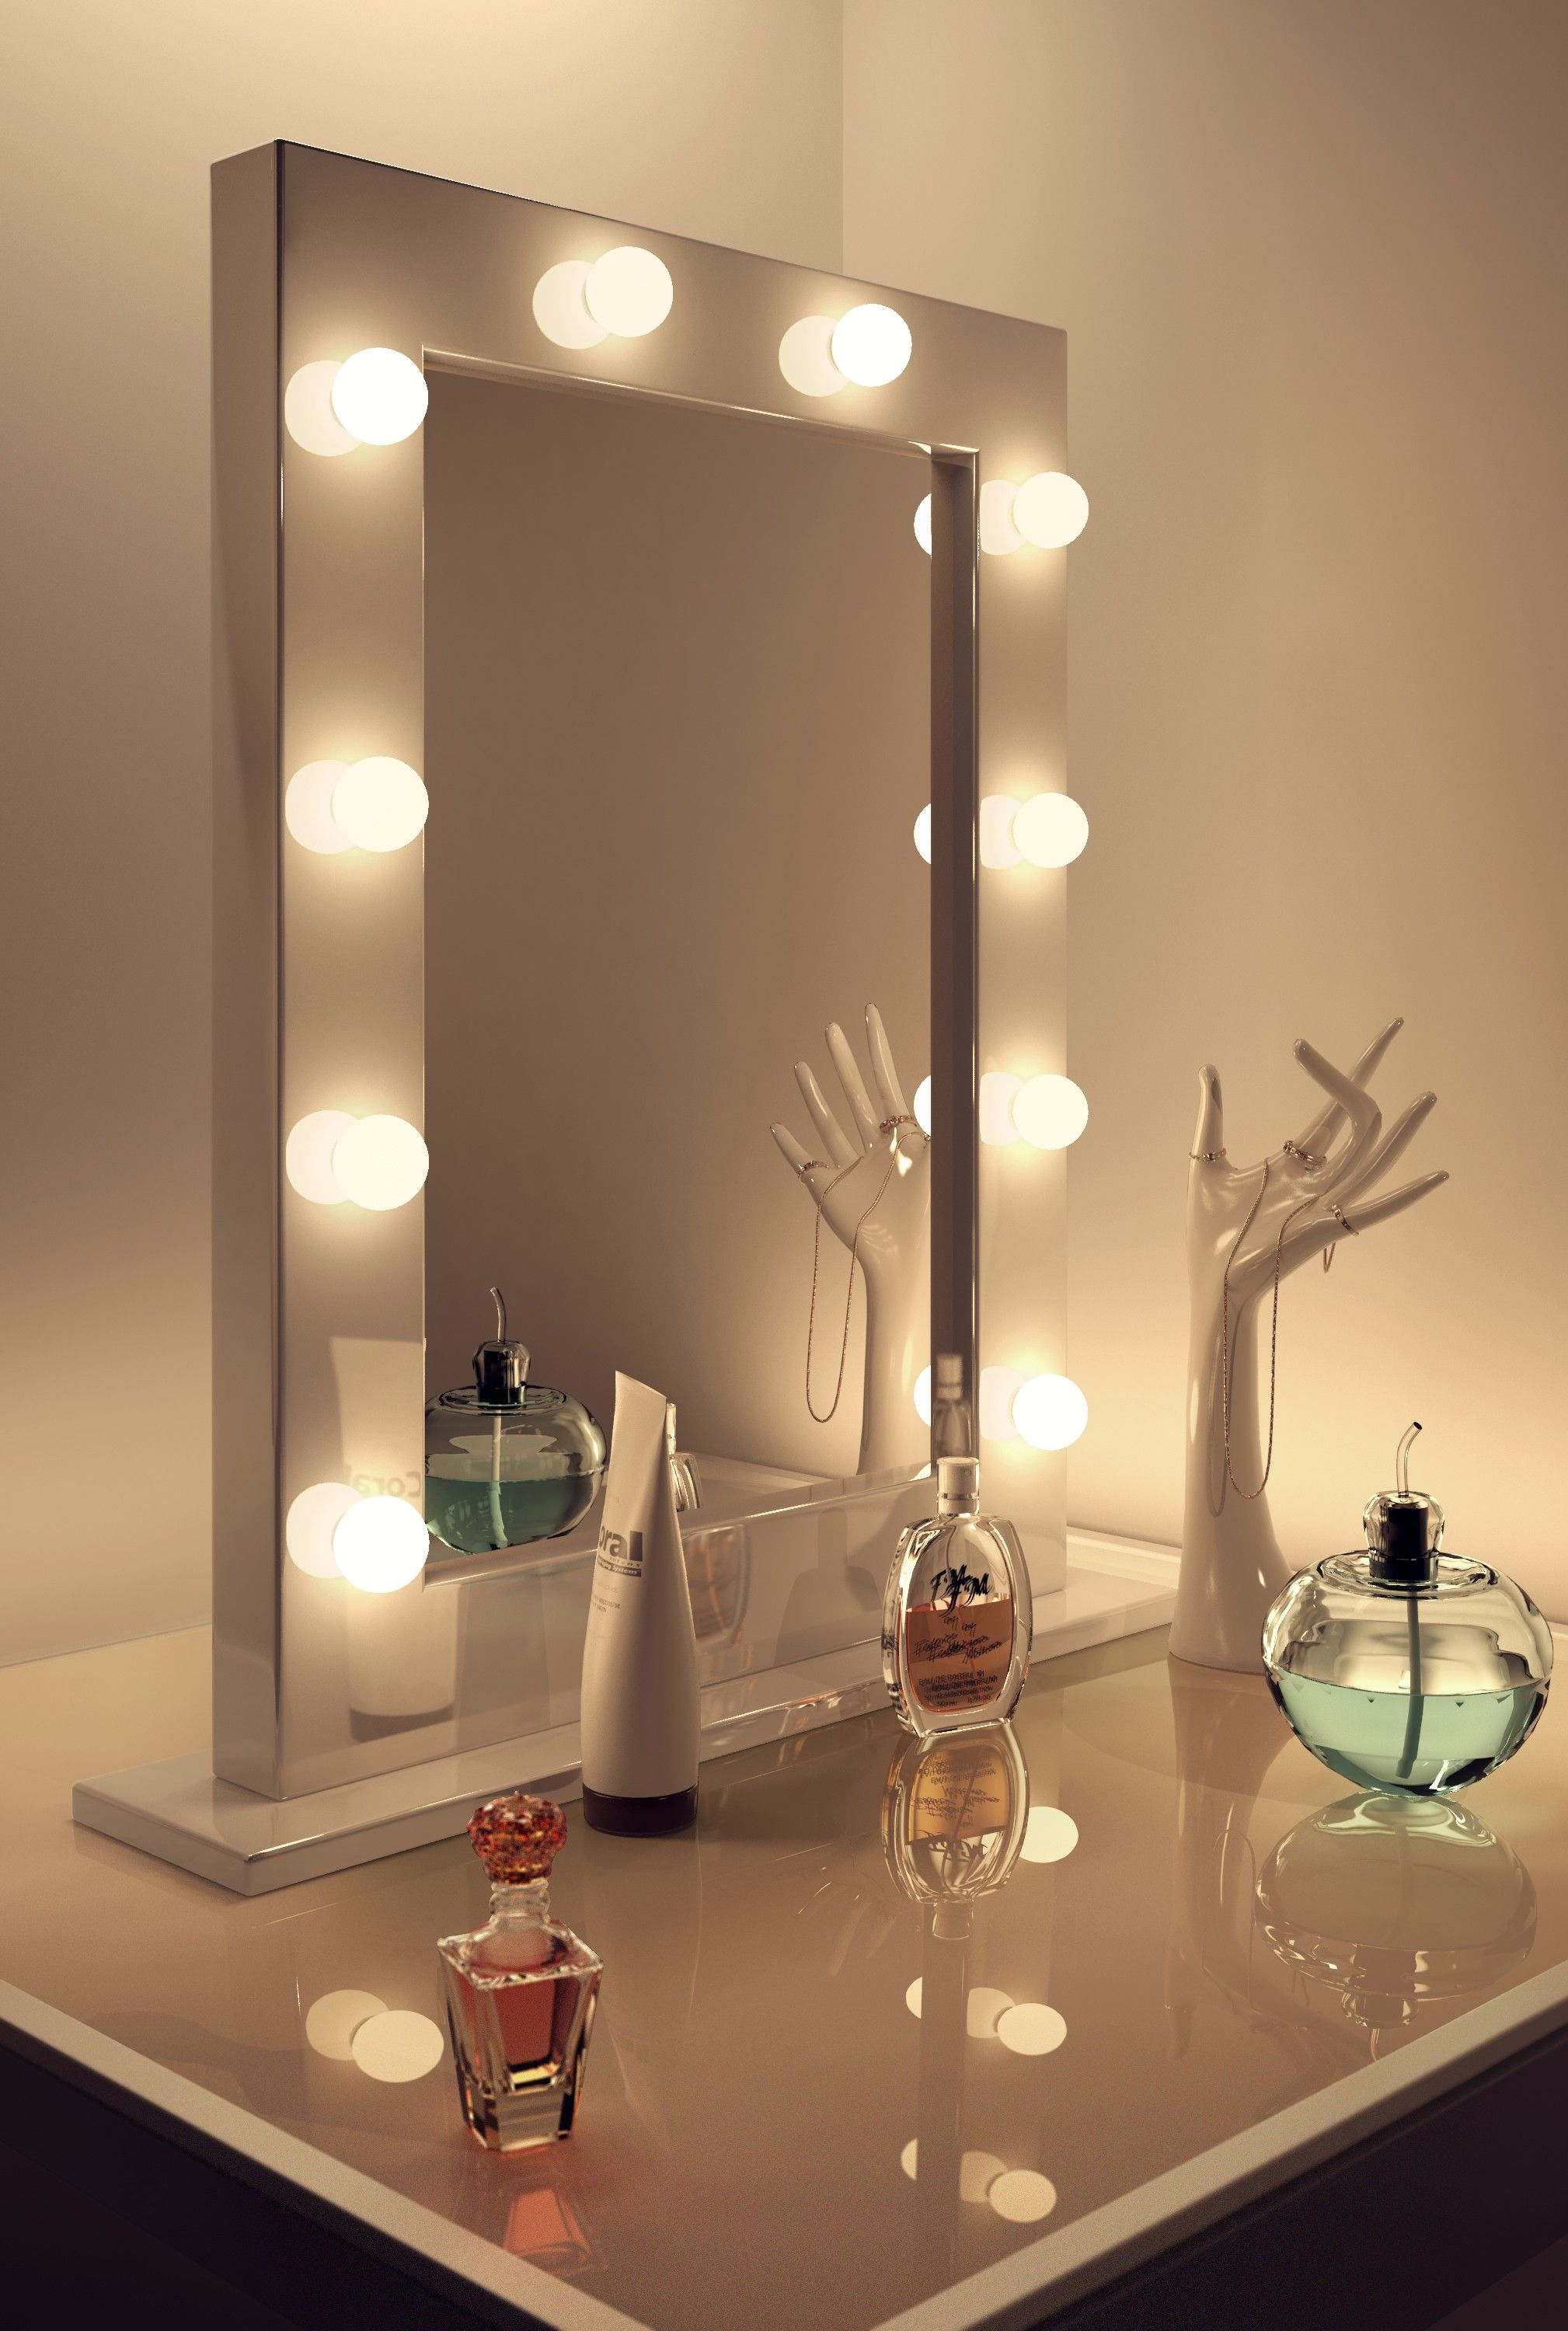 bathroom mirrors with lights in them. Importance Of Vanity Mirrors With Lights | Light Decorating Ideas Bathroom In Them A